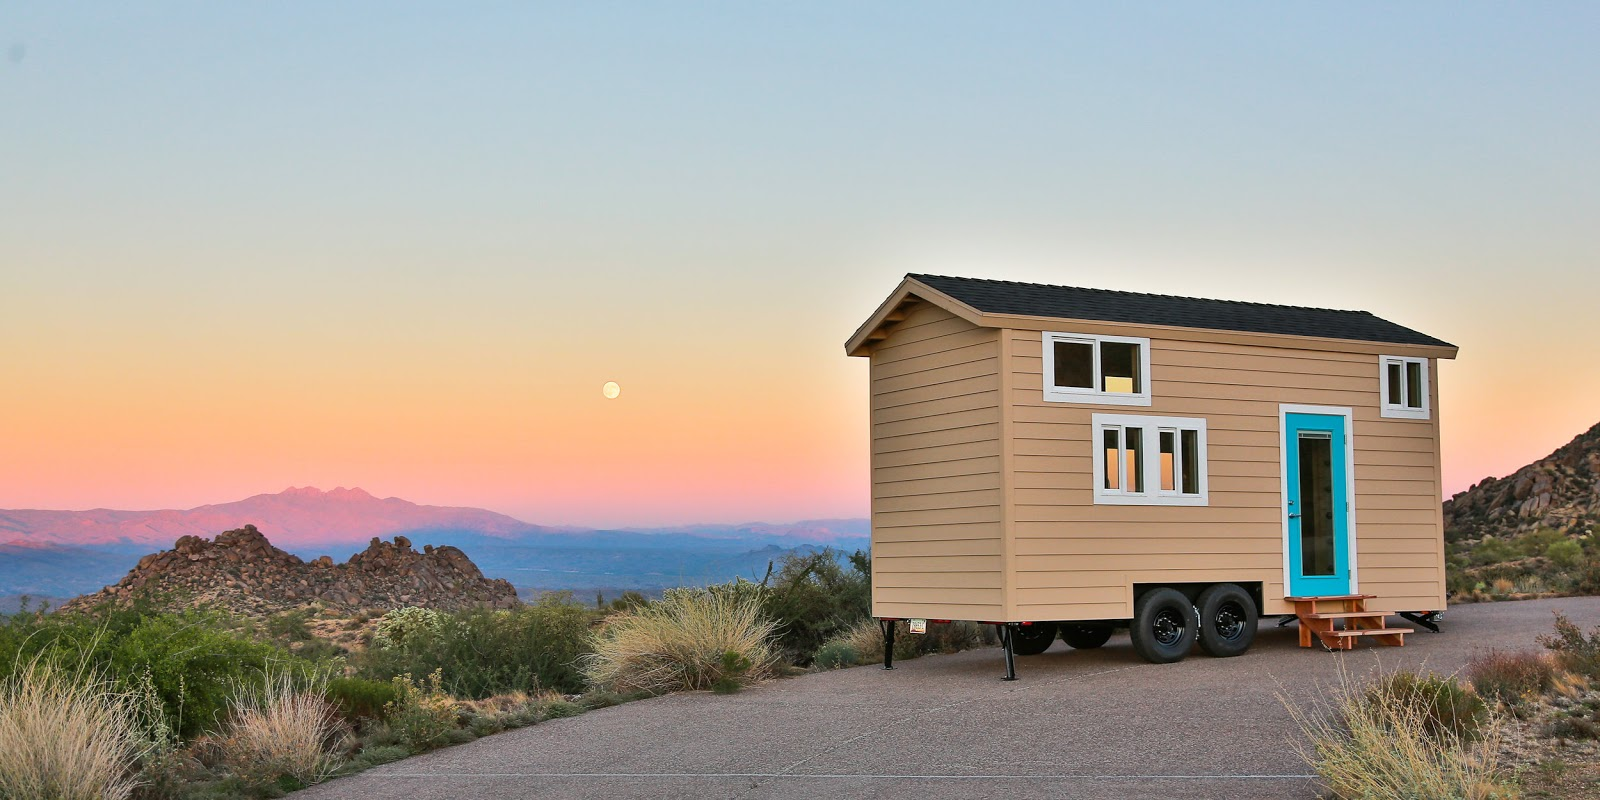 Tiny house town the mansion jr by uncharted tiny homes for Tiny house mansion